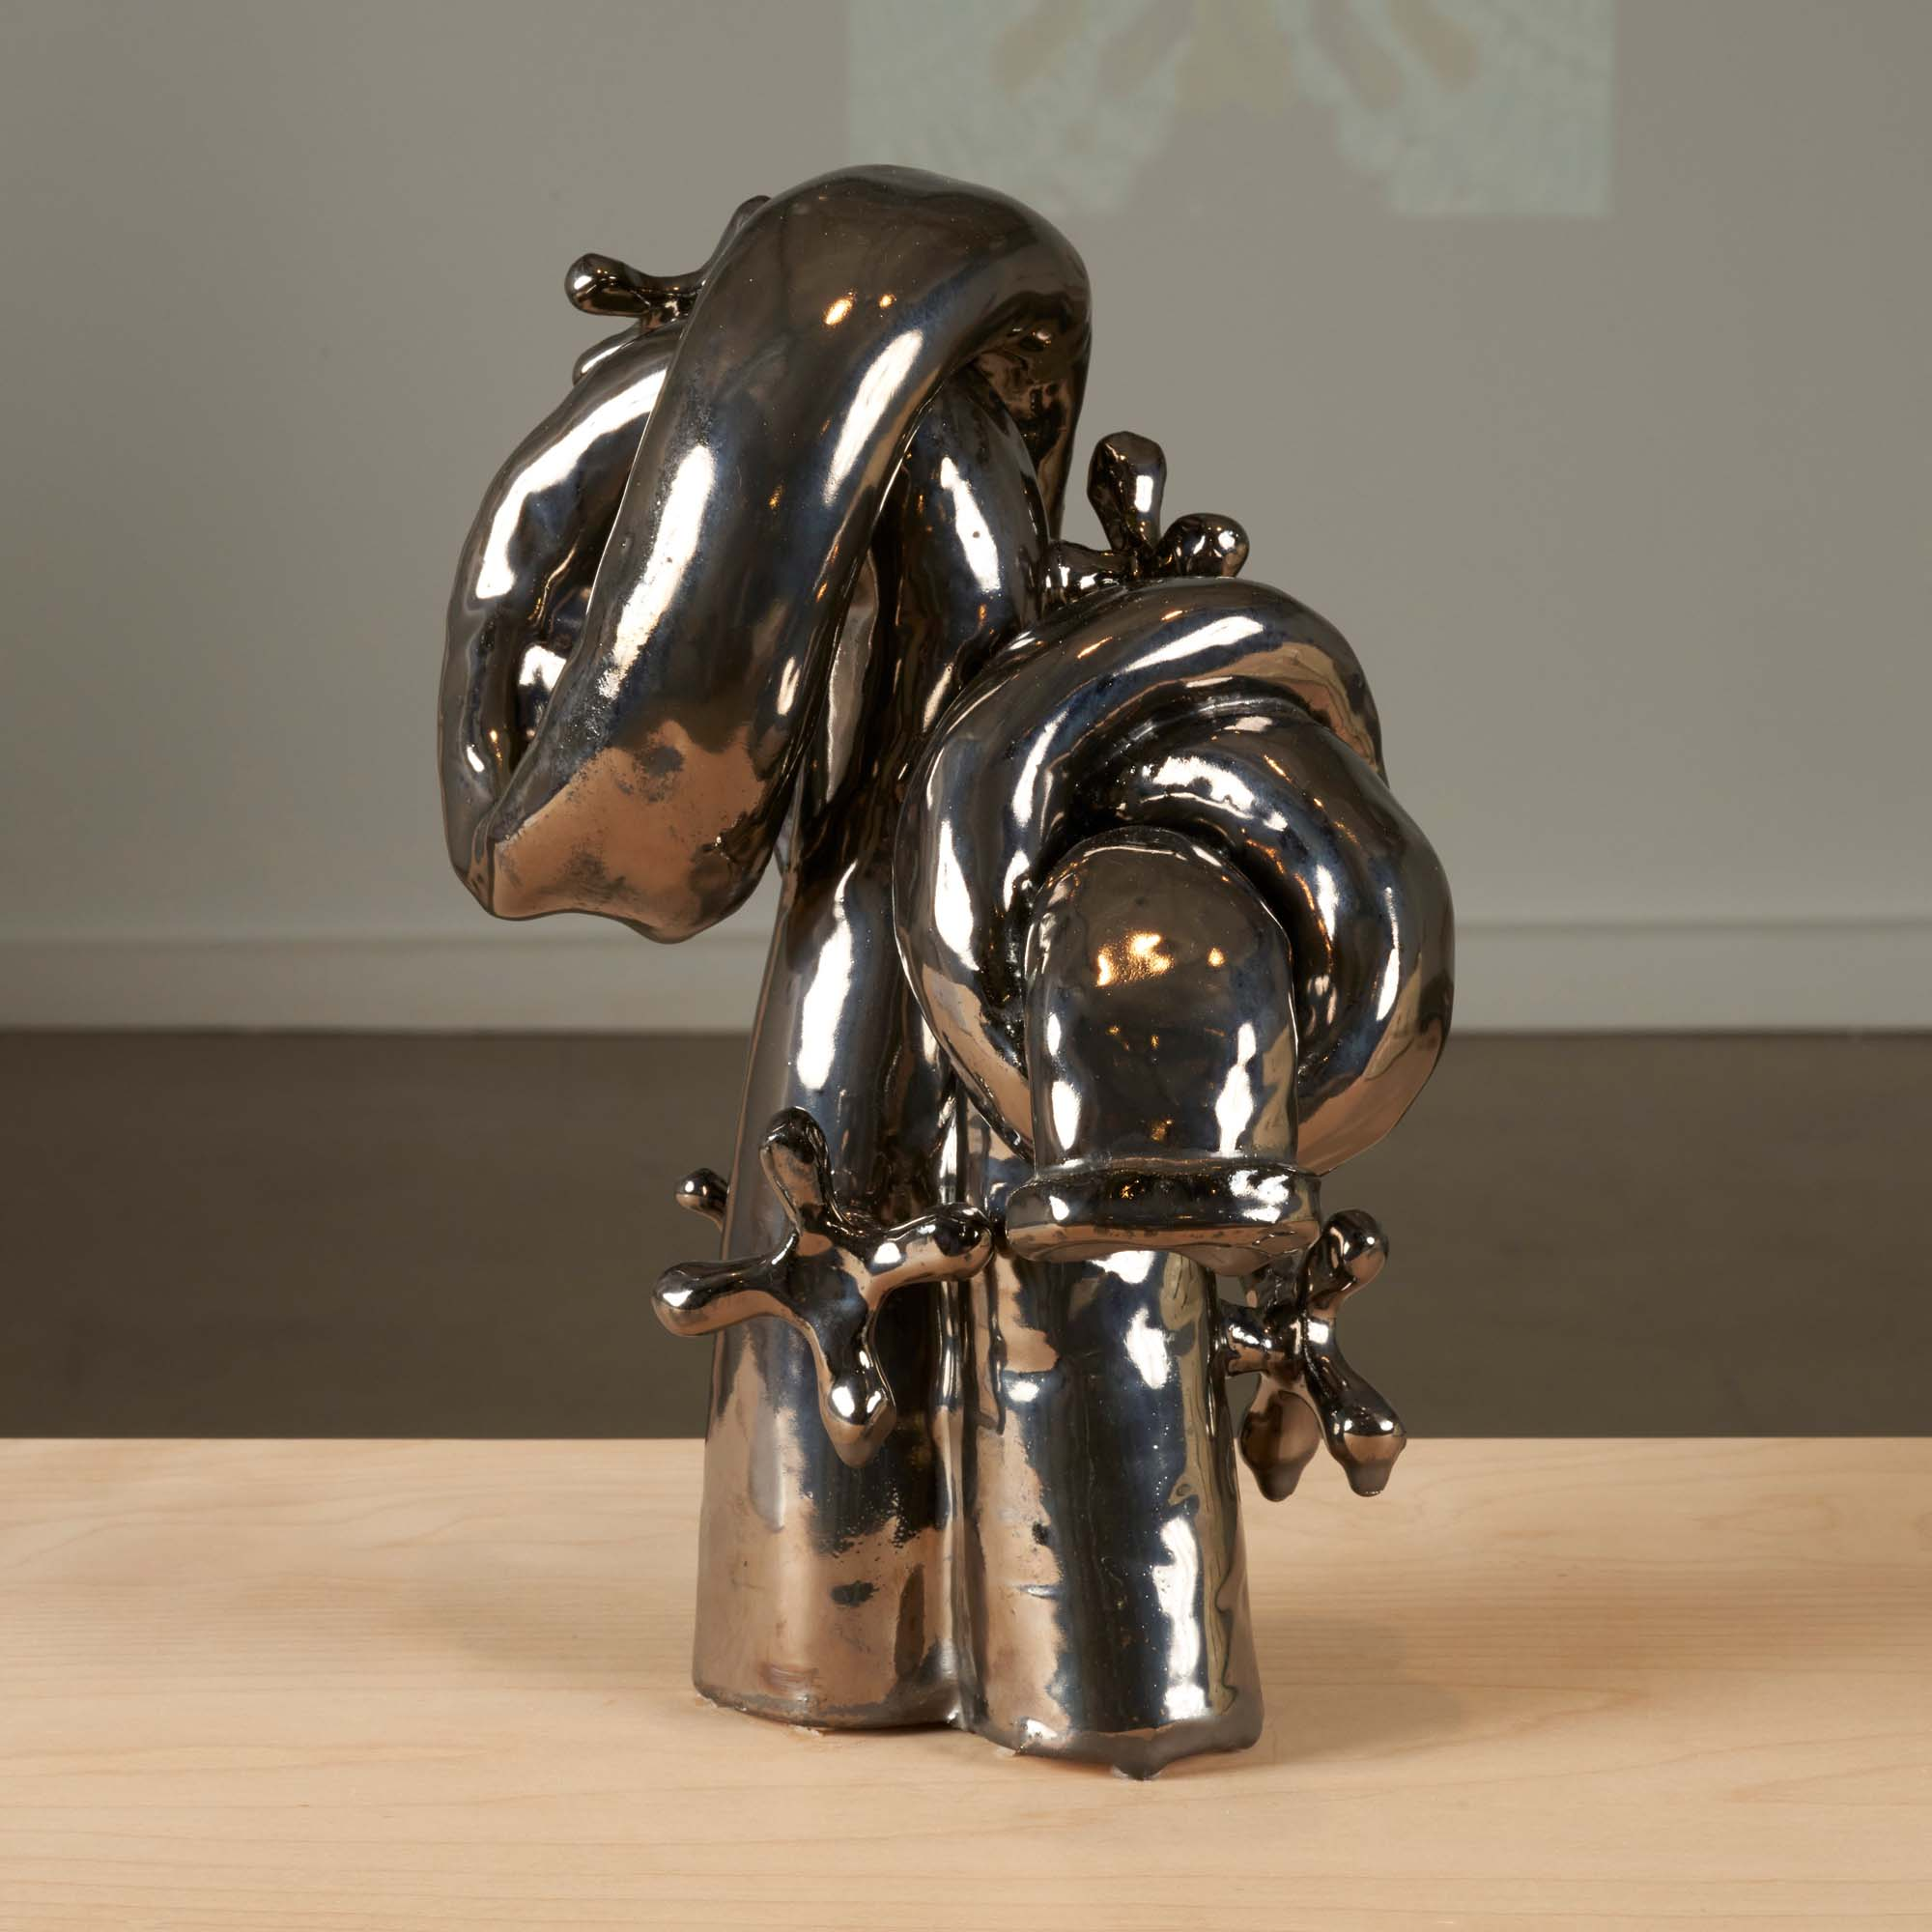 """Image of """"Outward and Bound"""" by Woody De Othello, a metallic-coated ceramic sculpture of a faucet."""